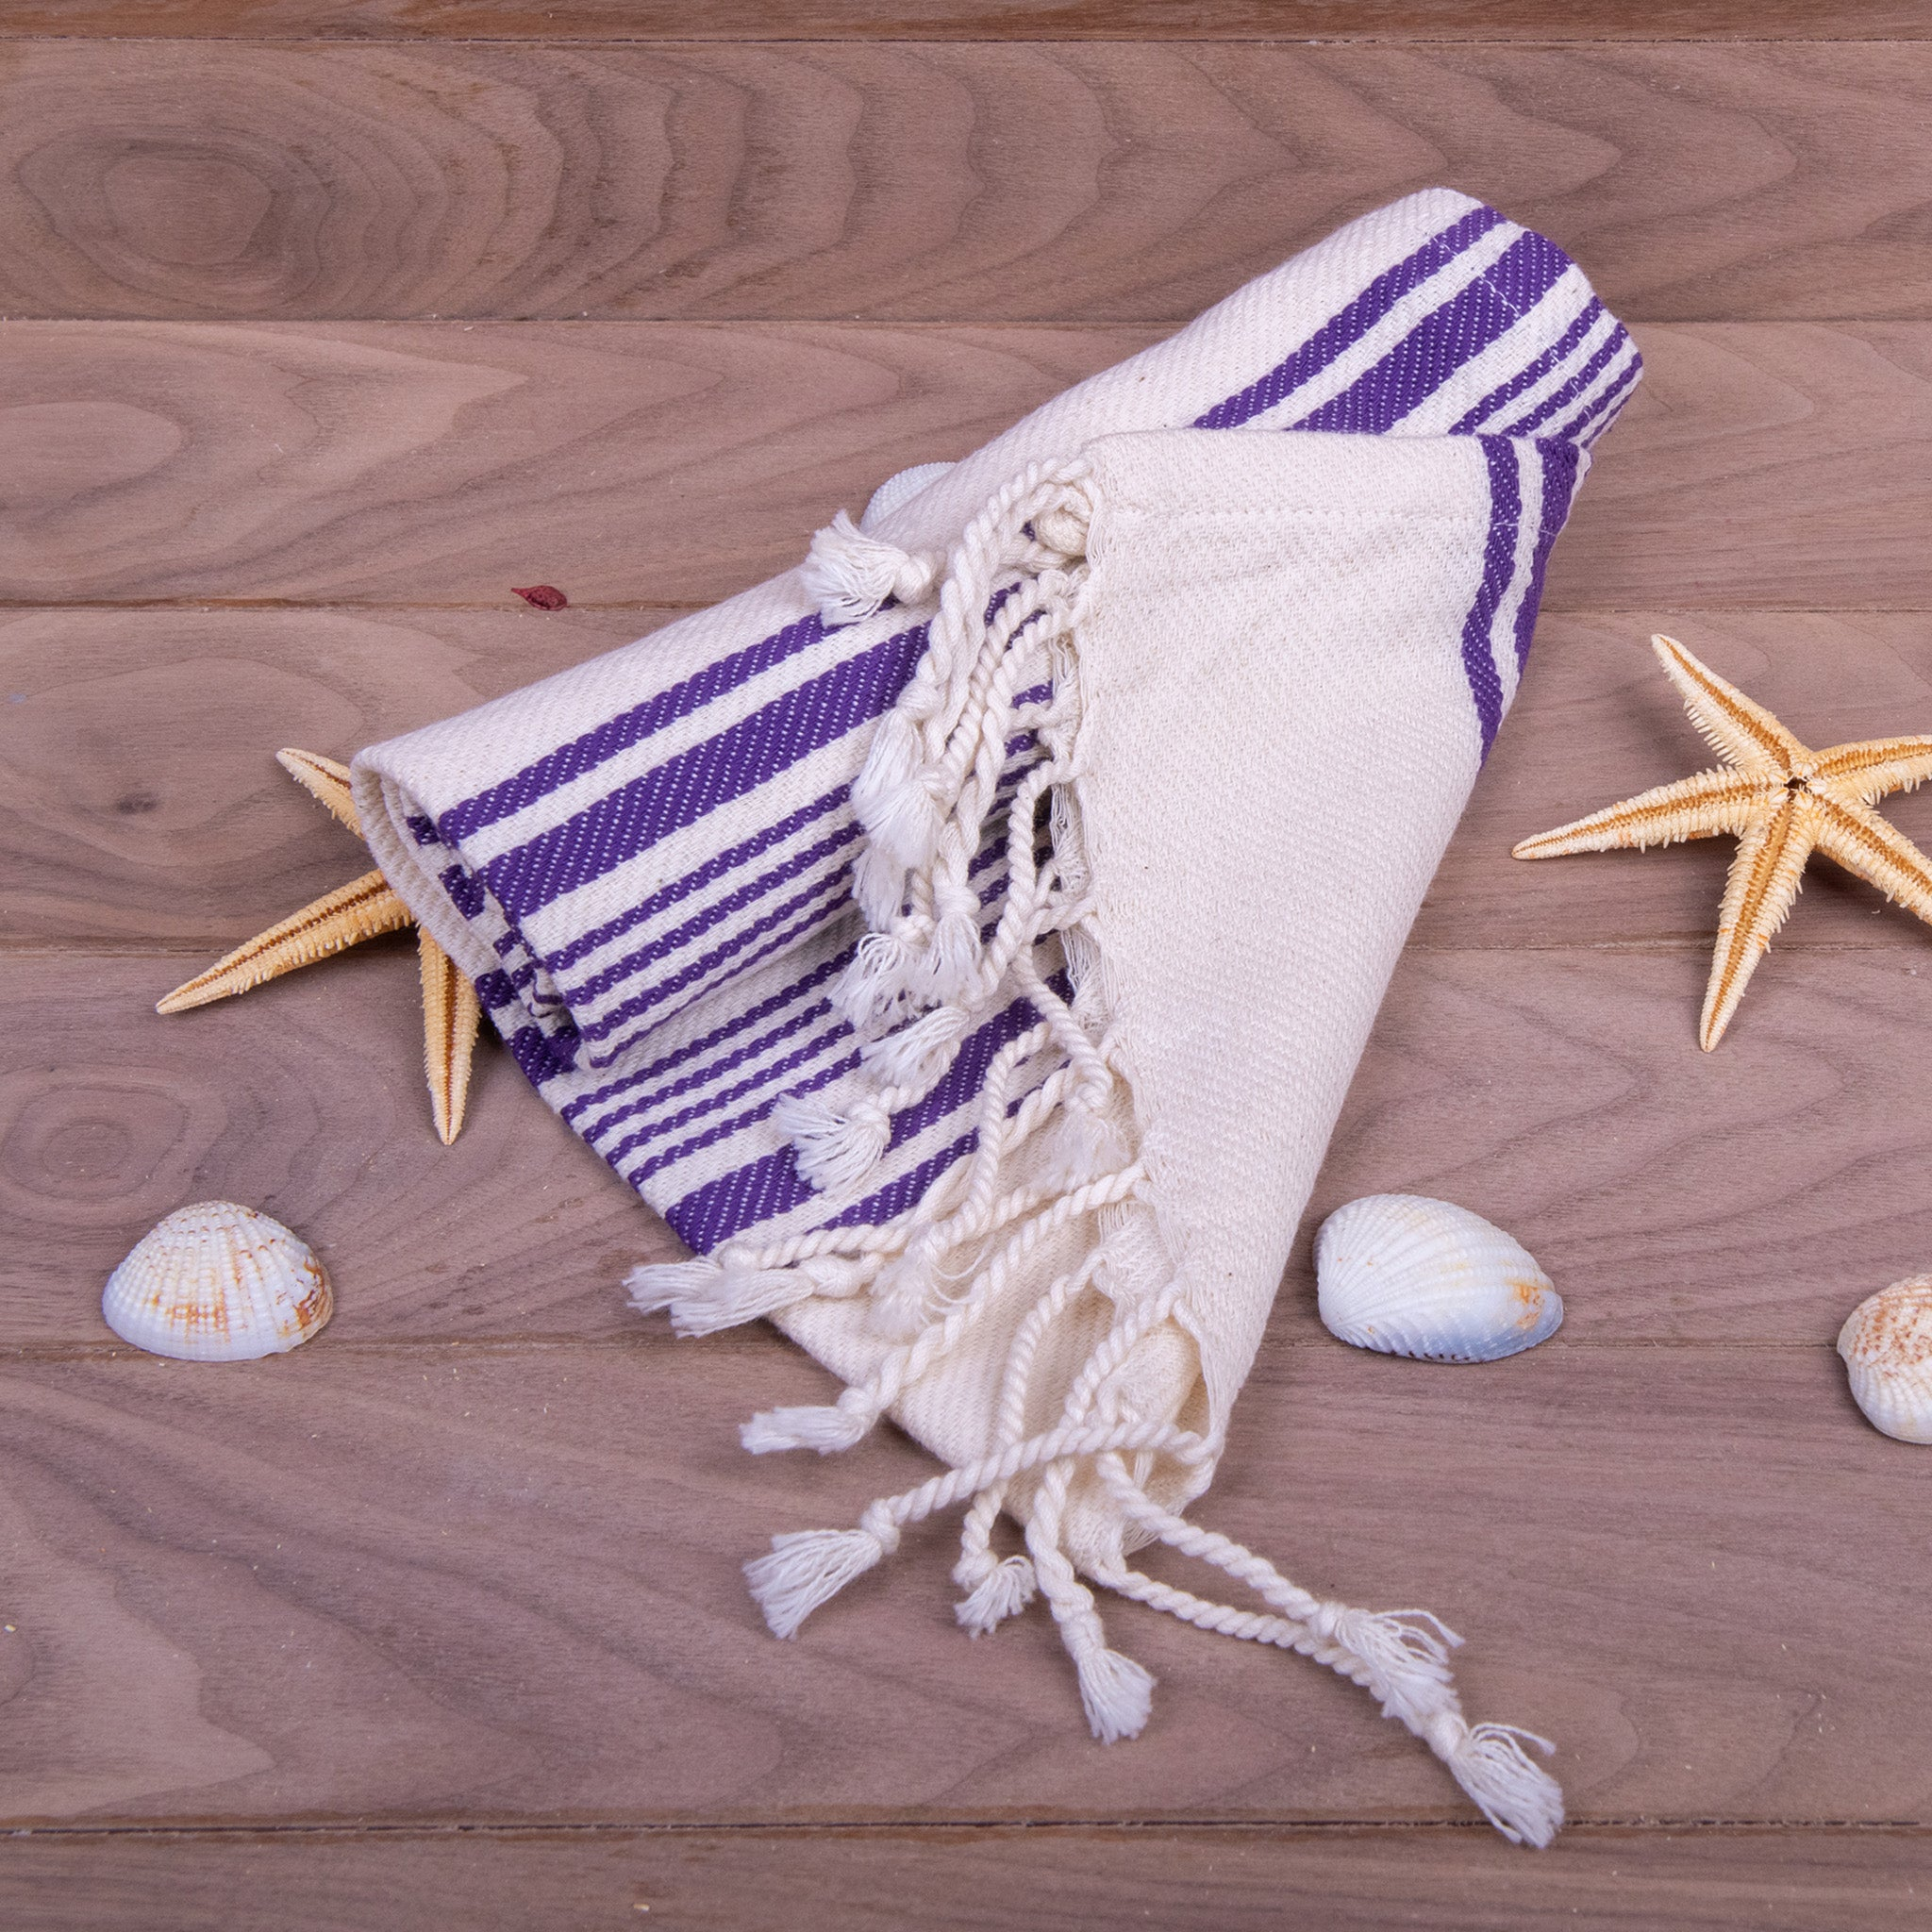 Turkish Towel, Peshkir, Hand Towel With Background - Blue